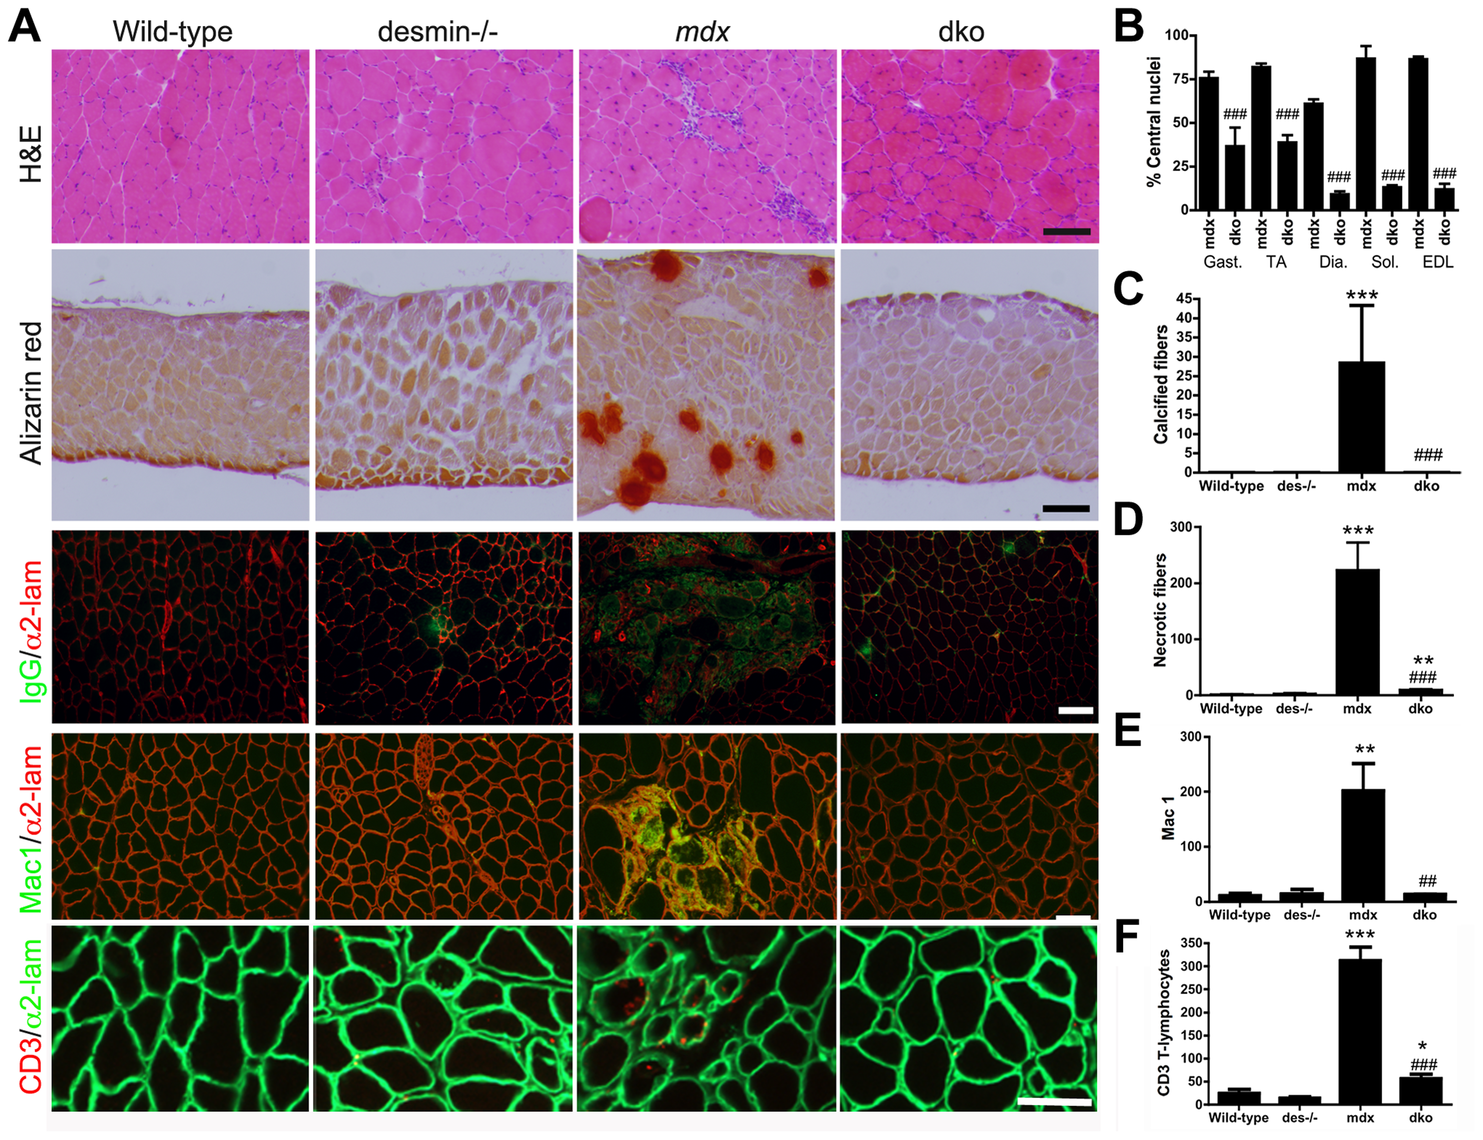 The dystrophic histopathology in <i>mdx<sup>4cv</sup></i> mice was profoundly improved by the absence of desmin.